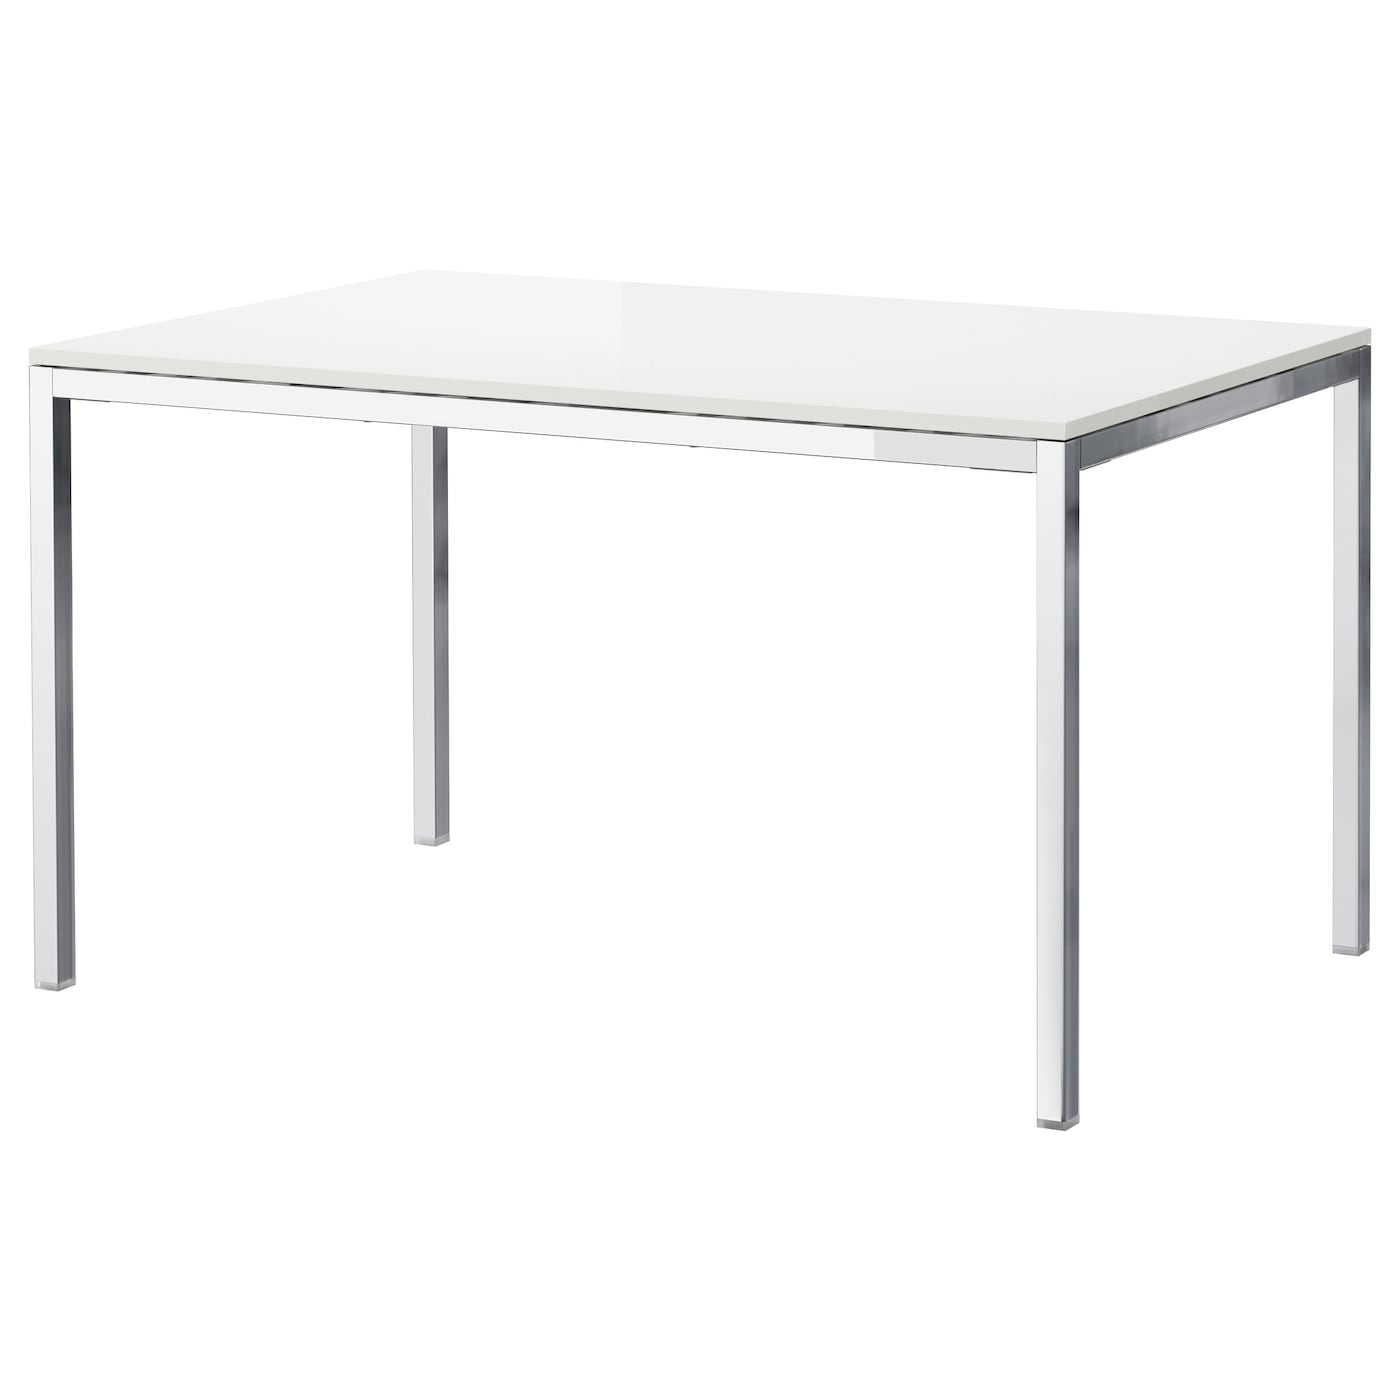 Torsby table chrome plated high gloss white 135x85 cm ikea - Table reglable en hauteur ikea ...